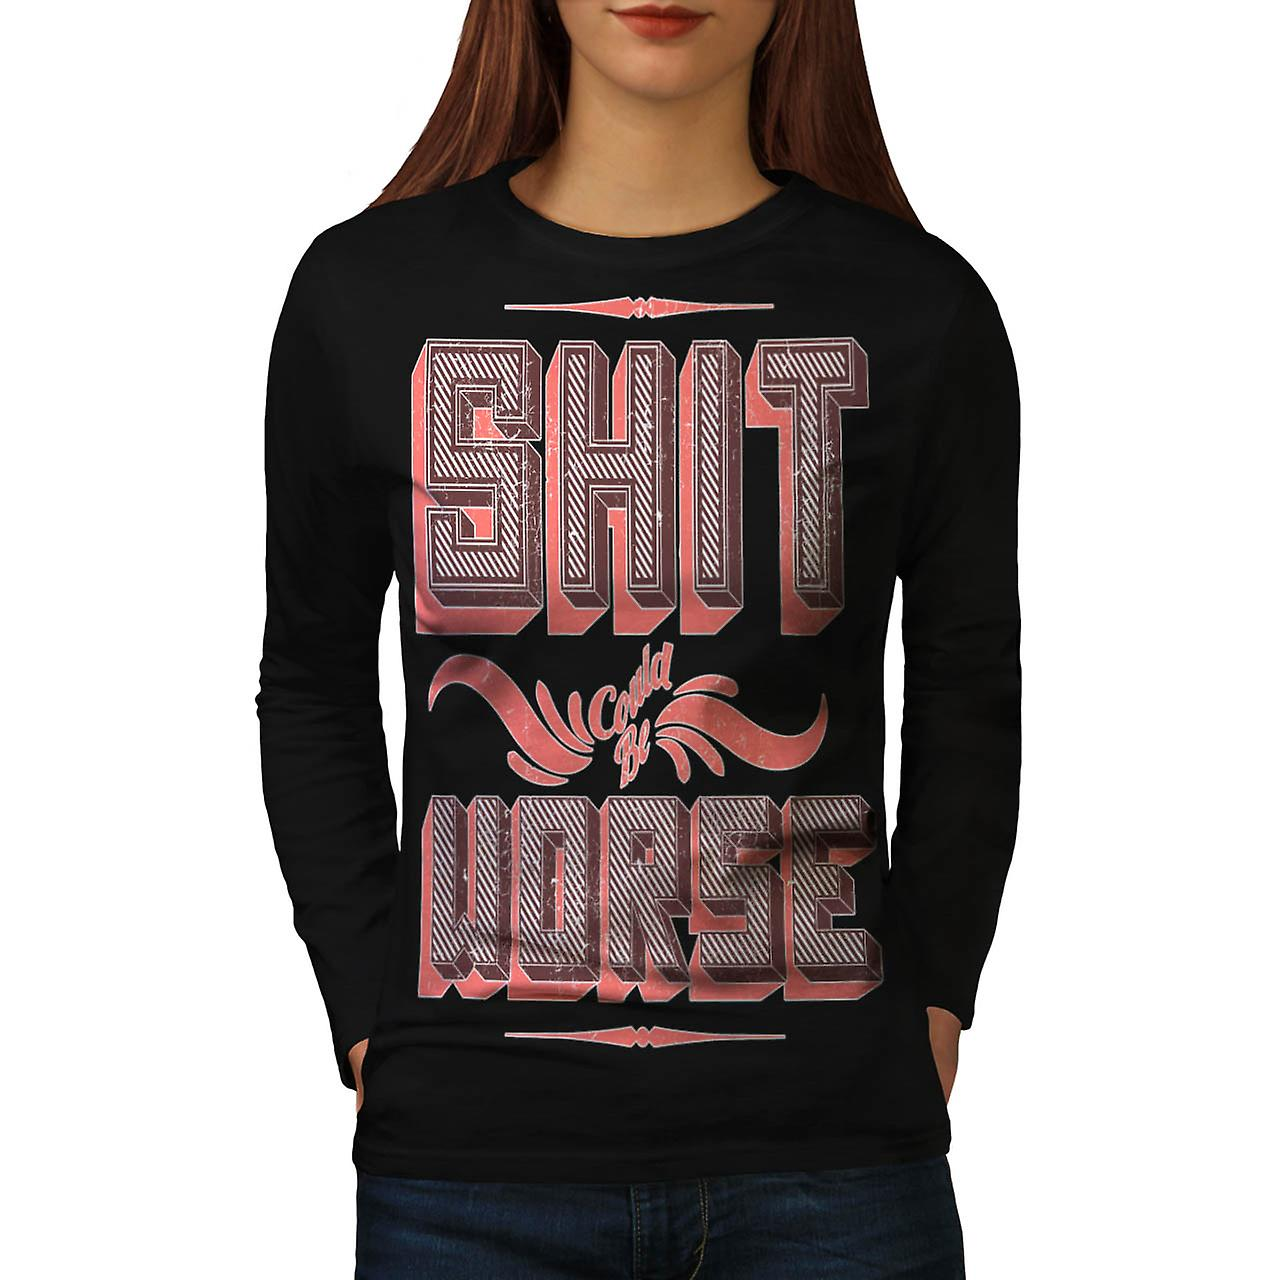 Sht Could Be Worse Slogan Women Black Long Sleeve T-shirt | Wellcoda